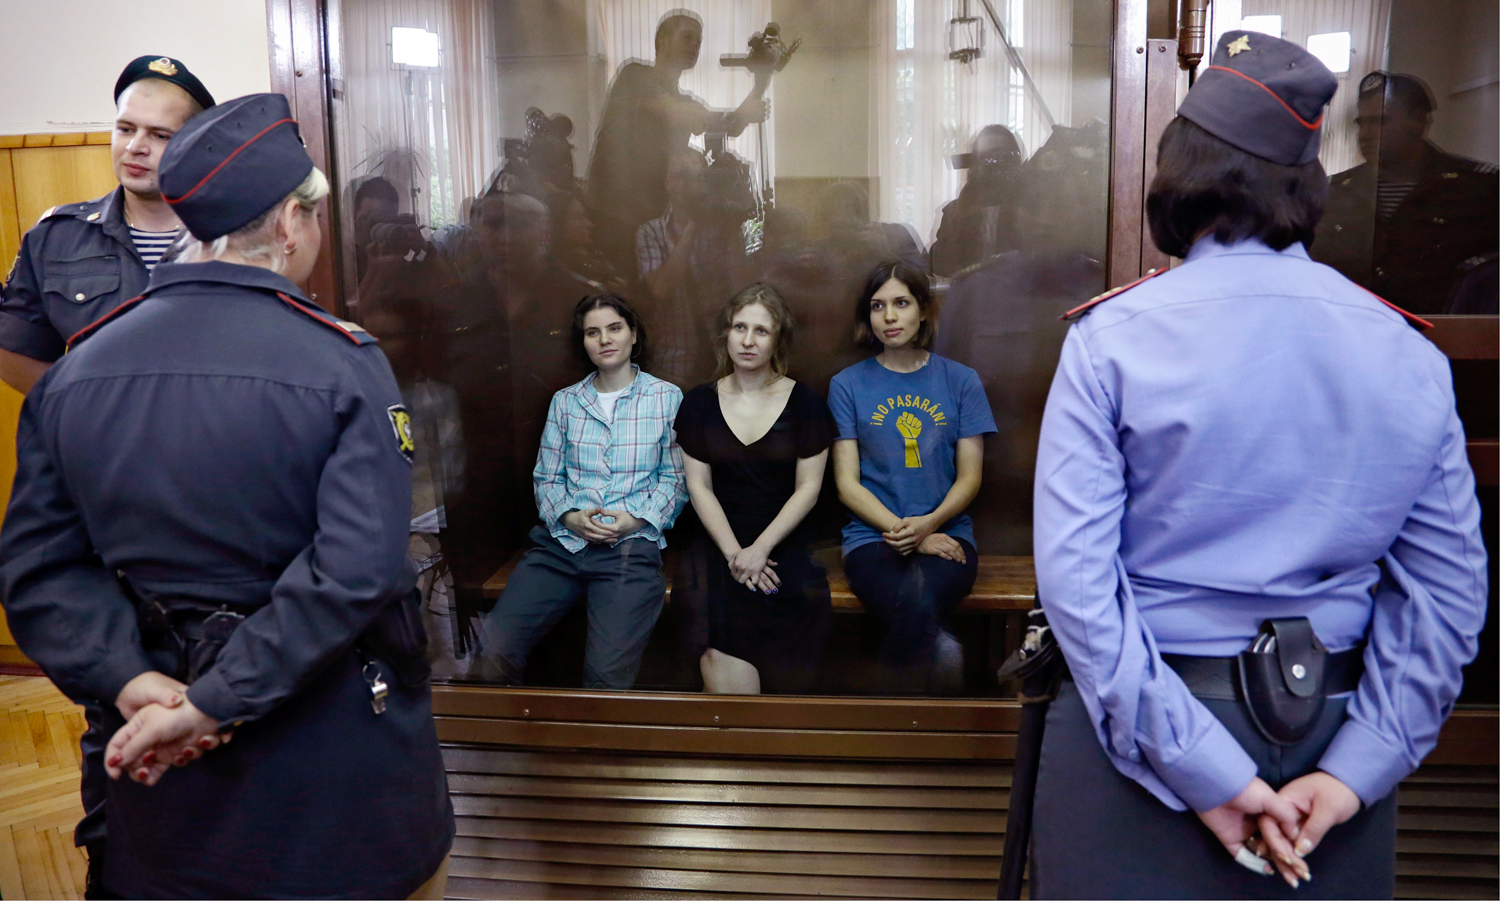 "Feminist punk group Pussy Riot members, from left, Yekaterina Samutsevich, Maria Alekhina and Nadezhda Tolokonnikova sit in a glass cage at a court room in Moscow, Russia on Friday, Aug 17, 2012. The women, two of whom have young children, are charged with hooliganism connected to religious hatred but the case is widely seen as a warning that authorities will only tolerate opposition under tightly controlled conditions. T-shirt on right worn by Tolokonnikova is Spanish and translates to ""They shall not pass"", a slogan often used to express determination to defend a position against an enemy. (AP Photo/Sergey Ponomarev)"